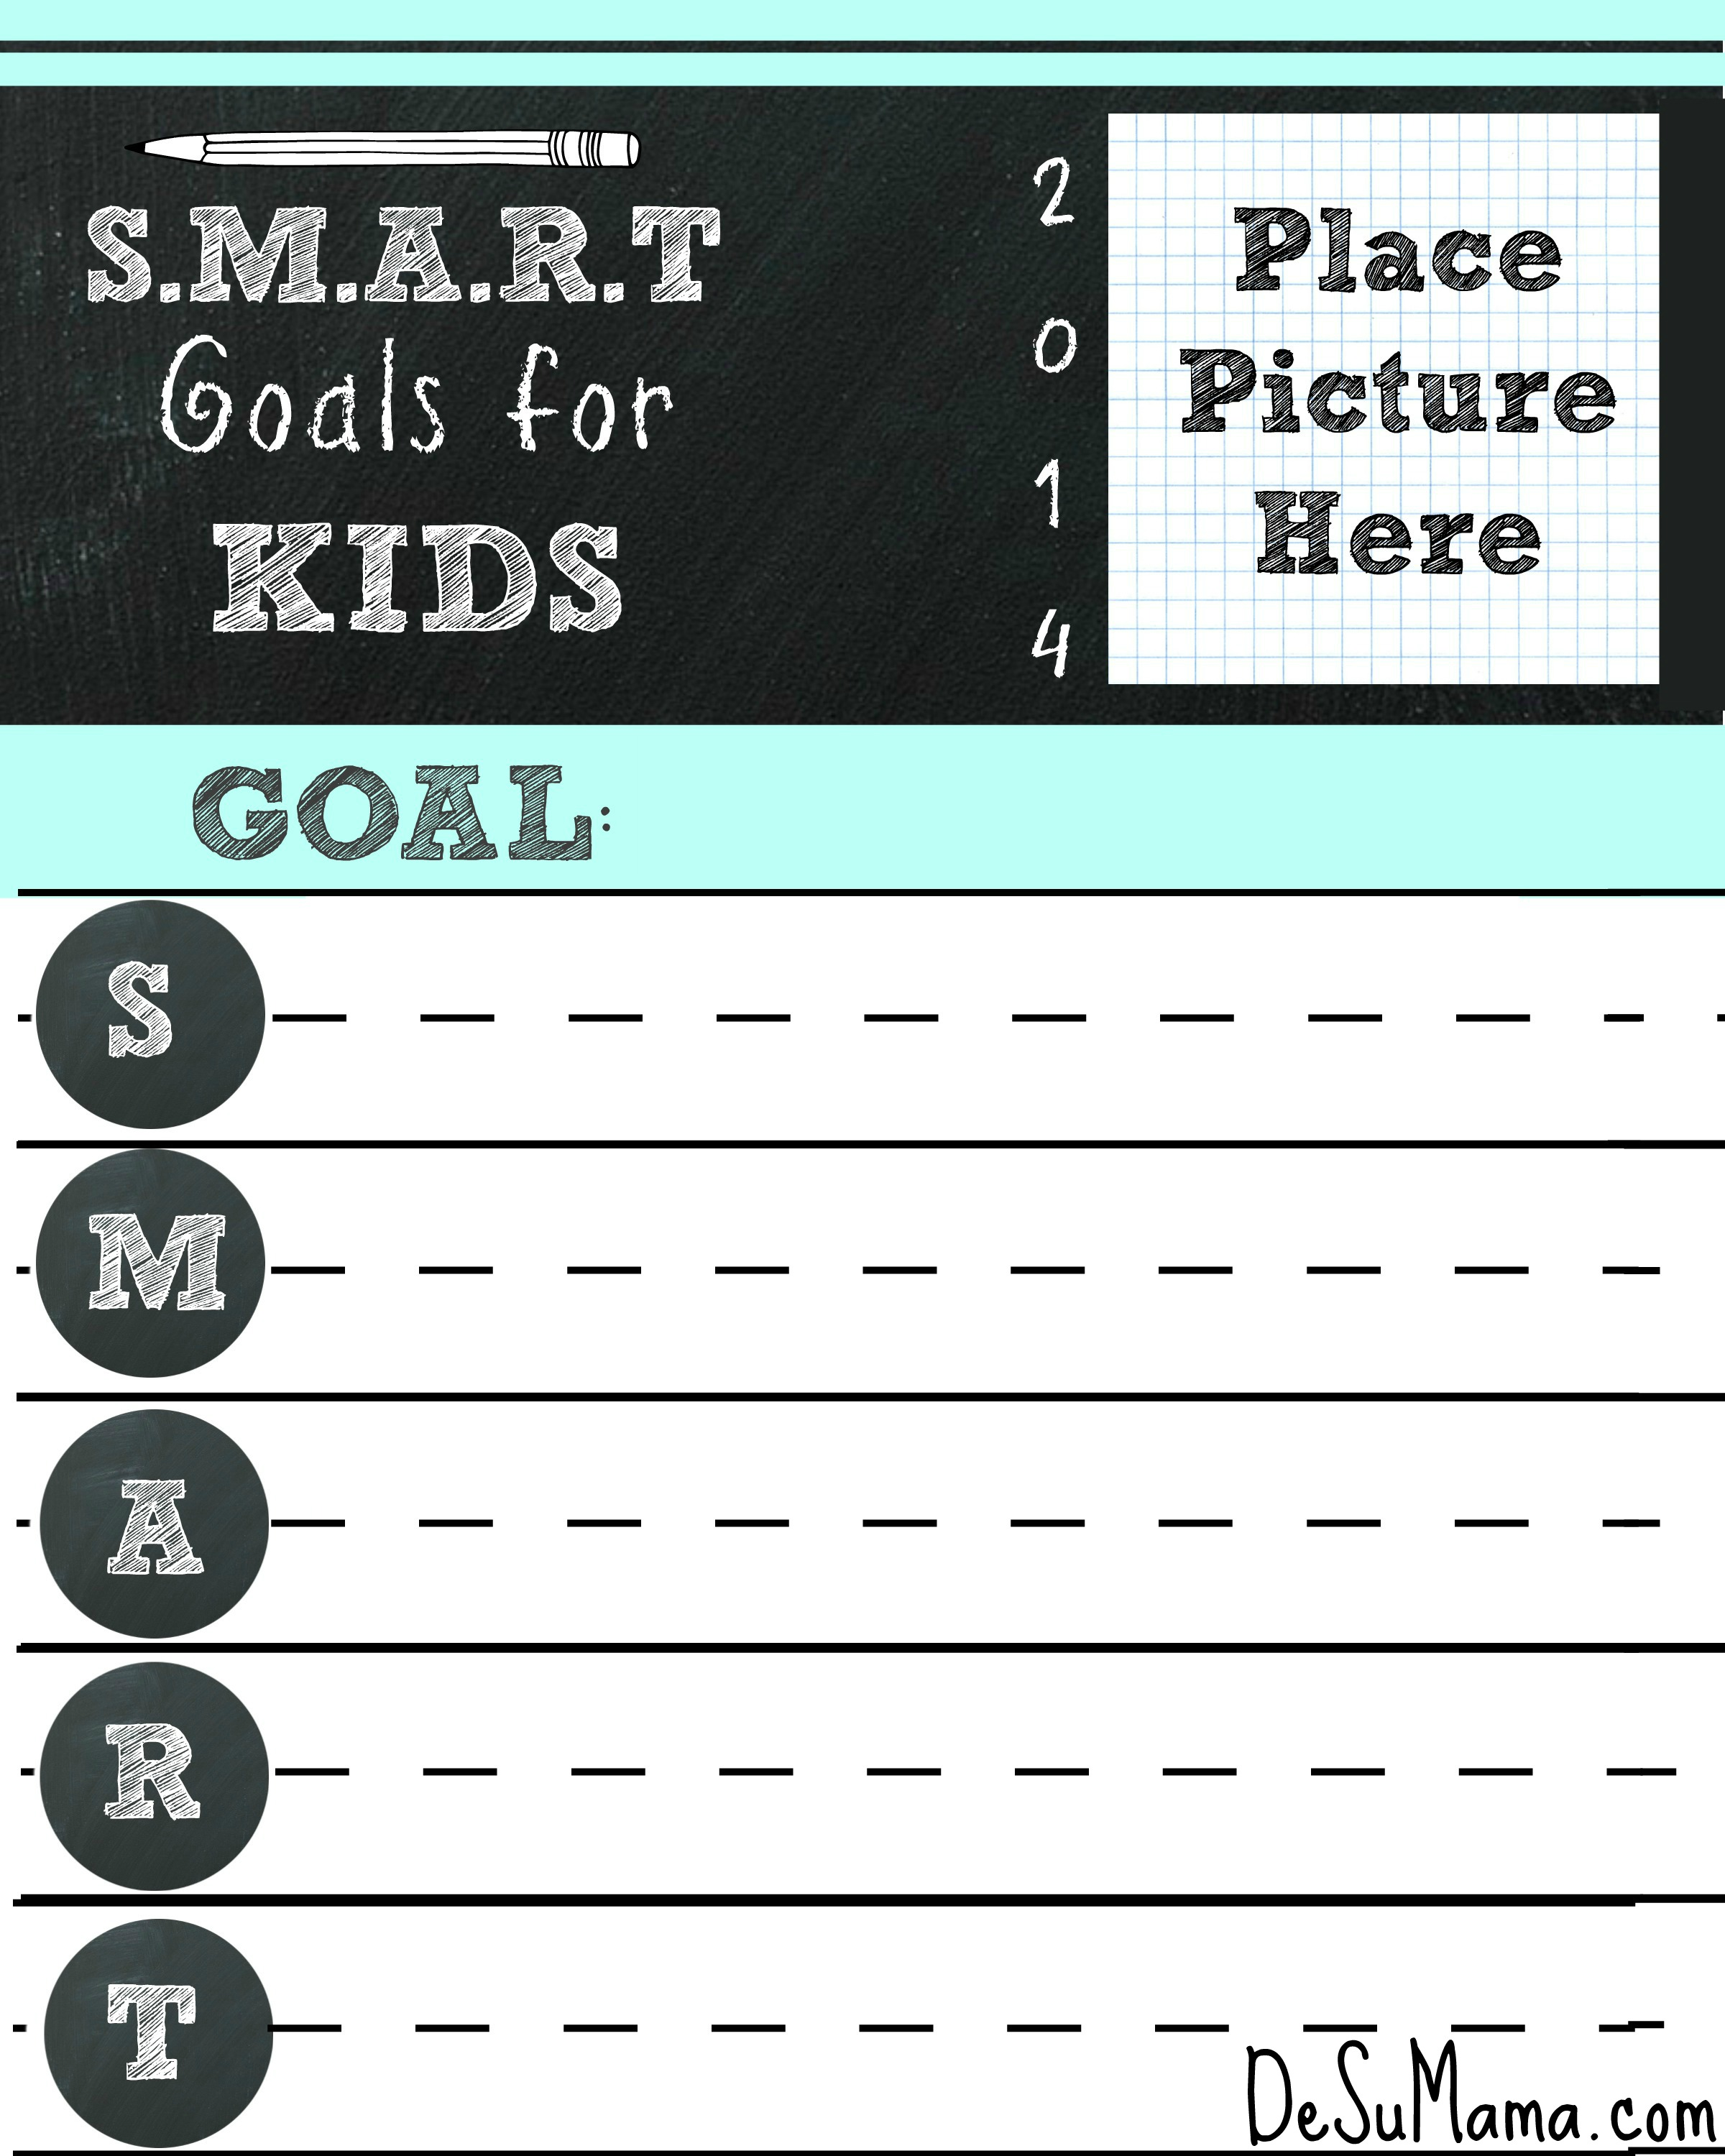 Goal Setting For Kids The Smart Way